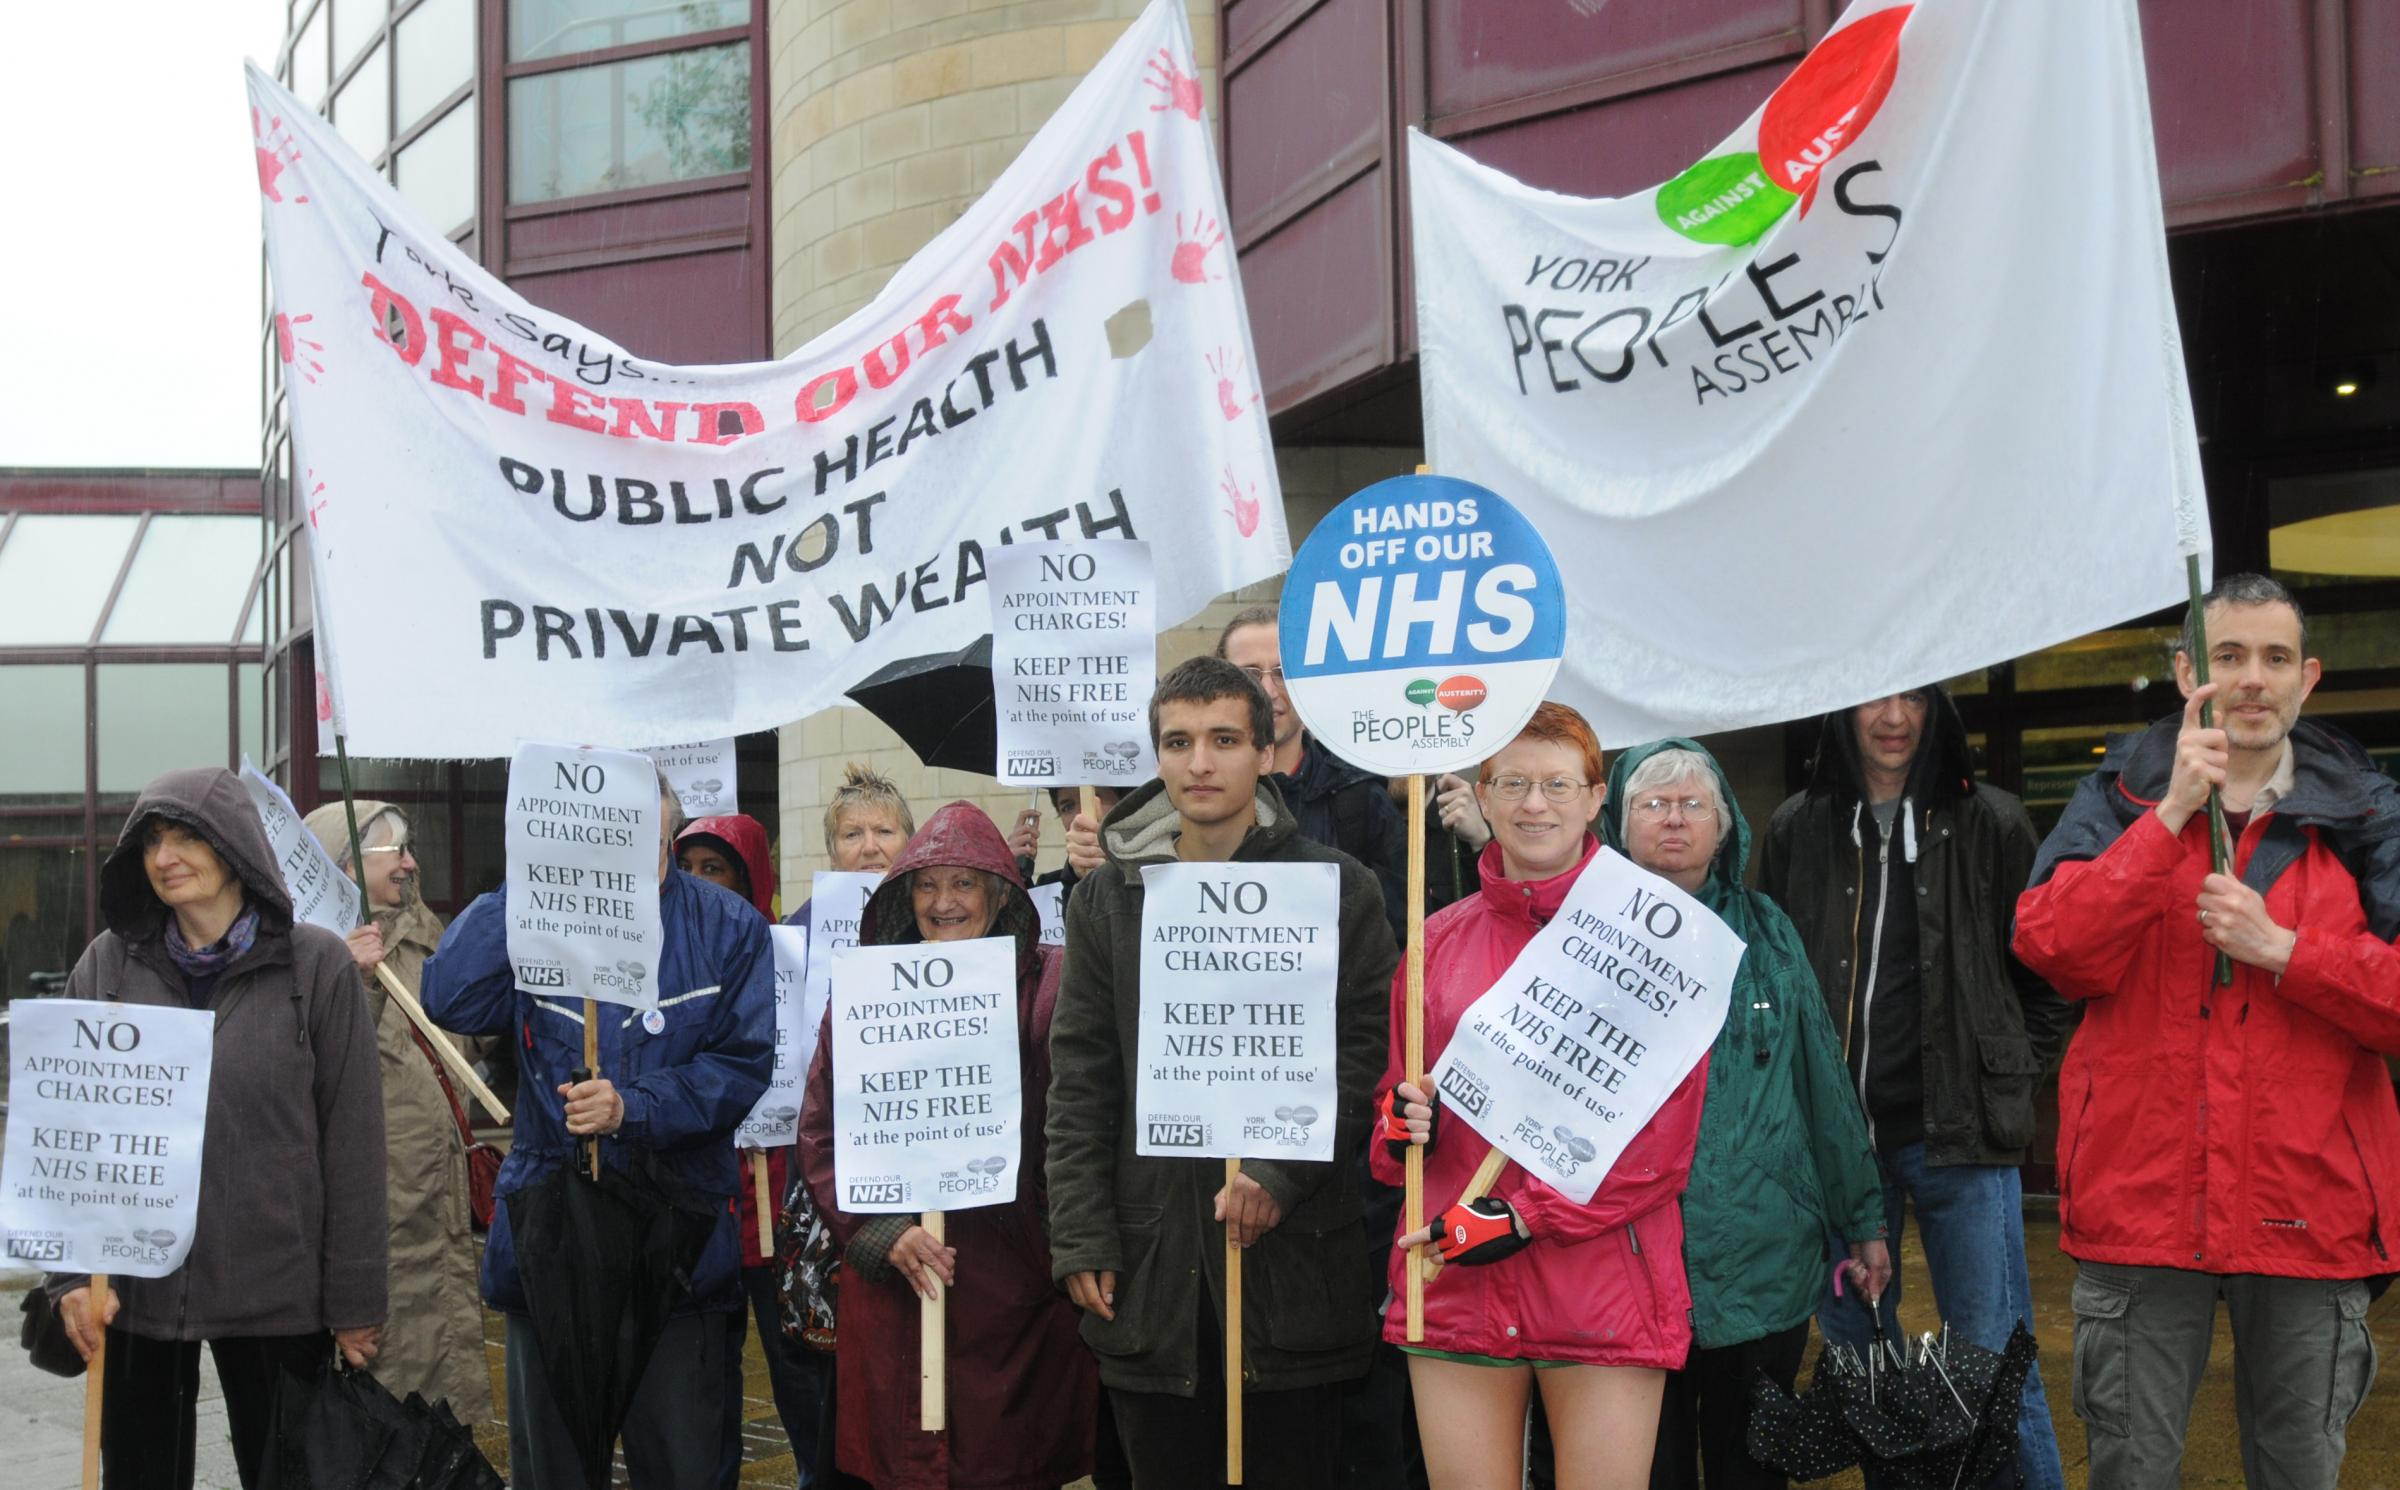 Protesters demonstrate against GP charges proposal